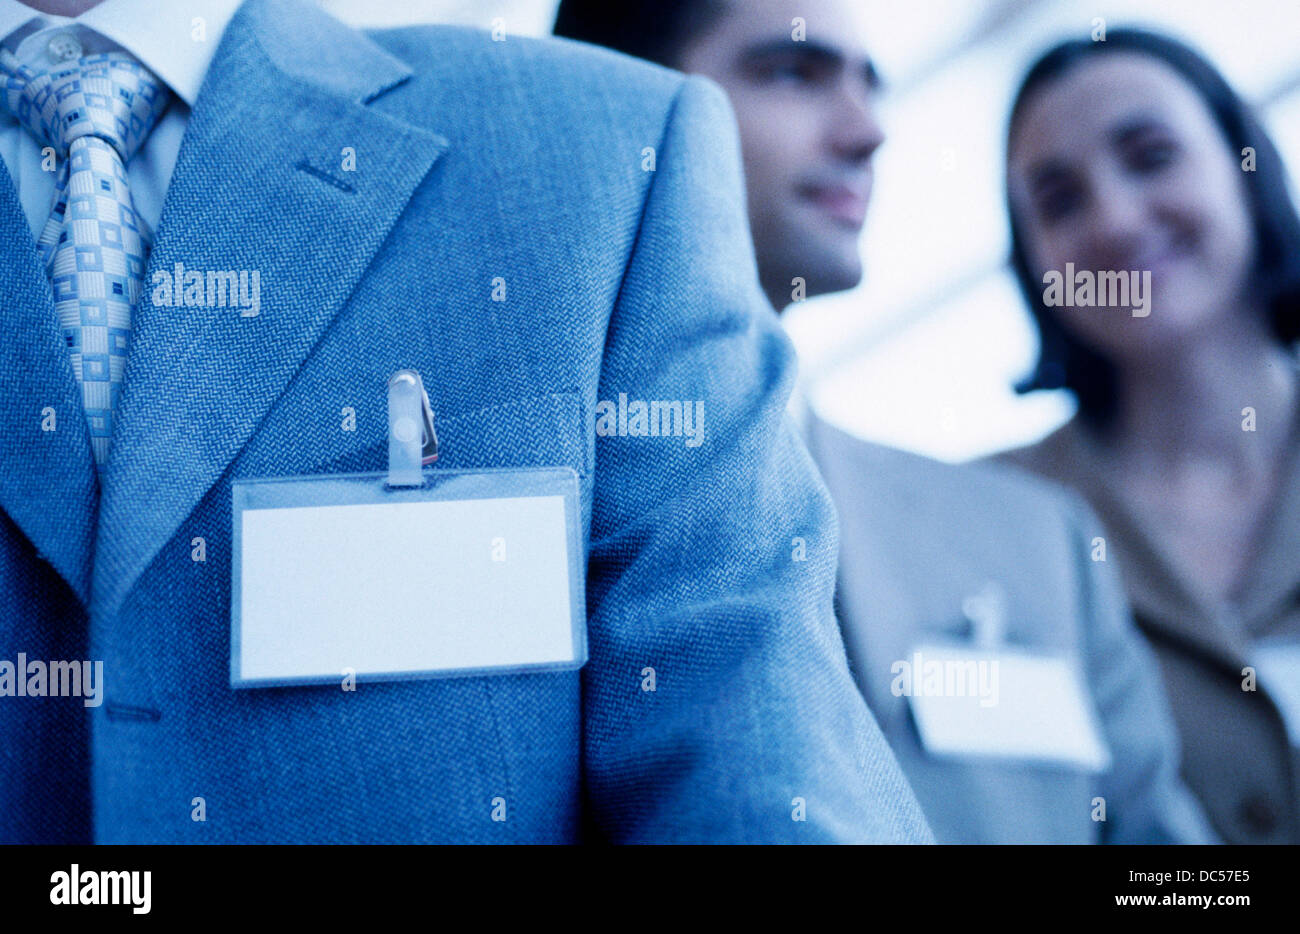 Business congress, ID Cards - Stock Image